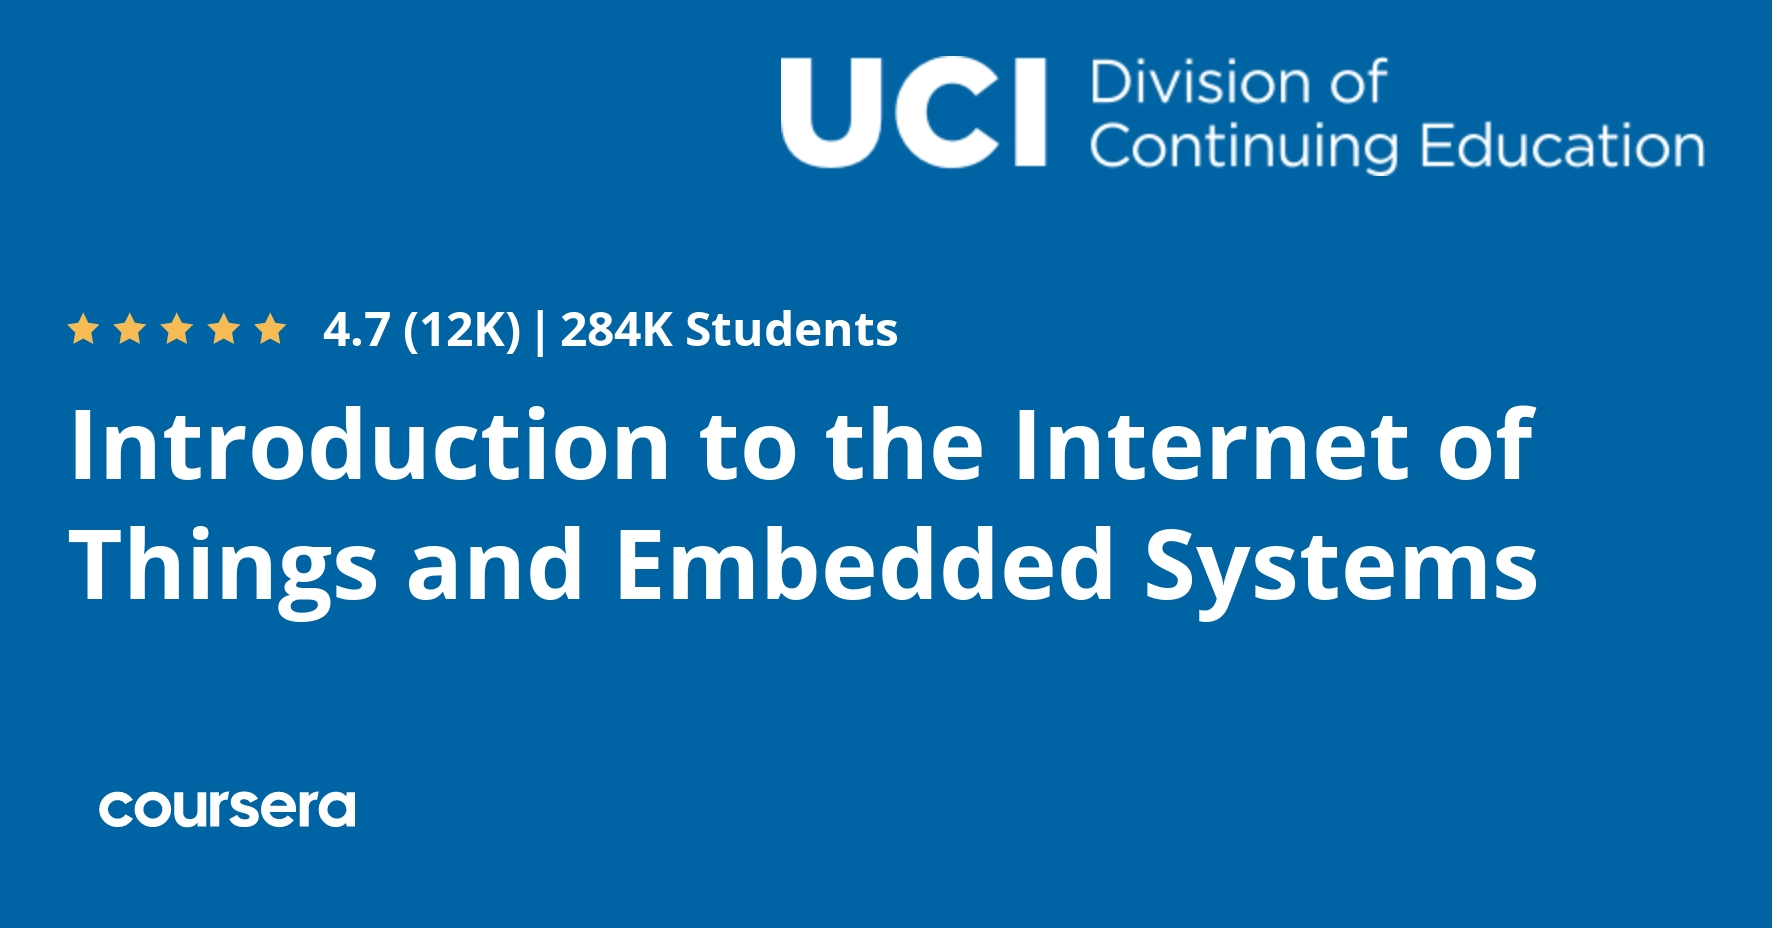 Introduction to the Internet of Things and Embedded Systems (Coursera)